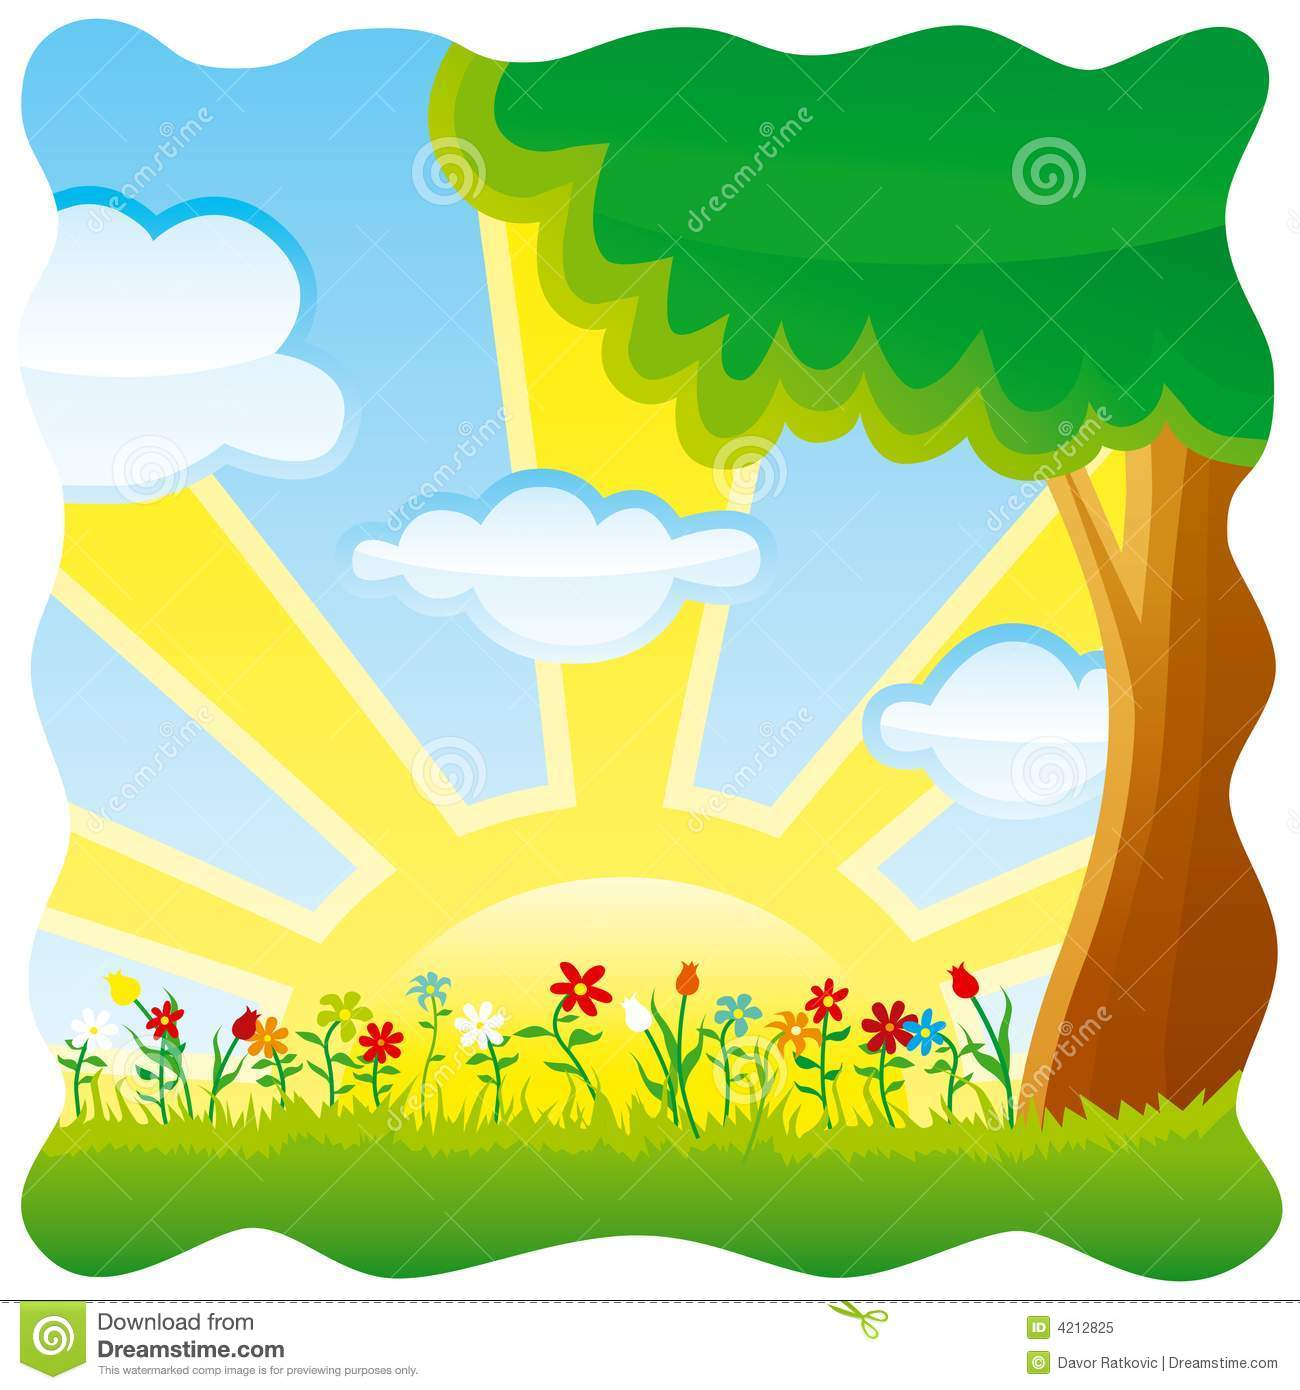 Nature clipart #10, Download drawings